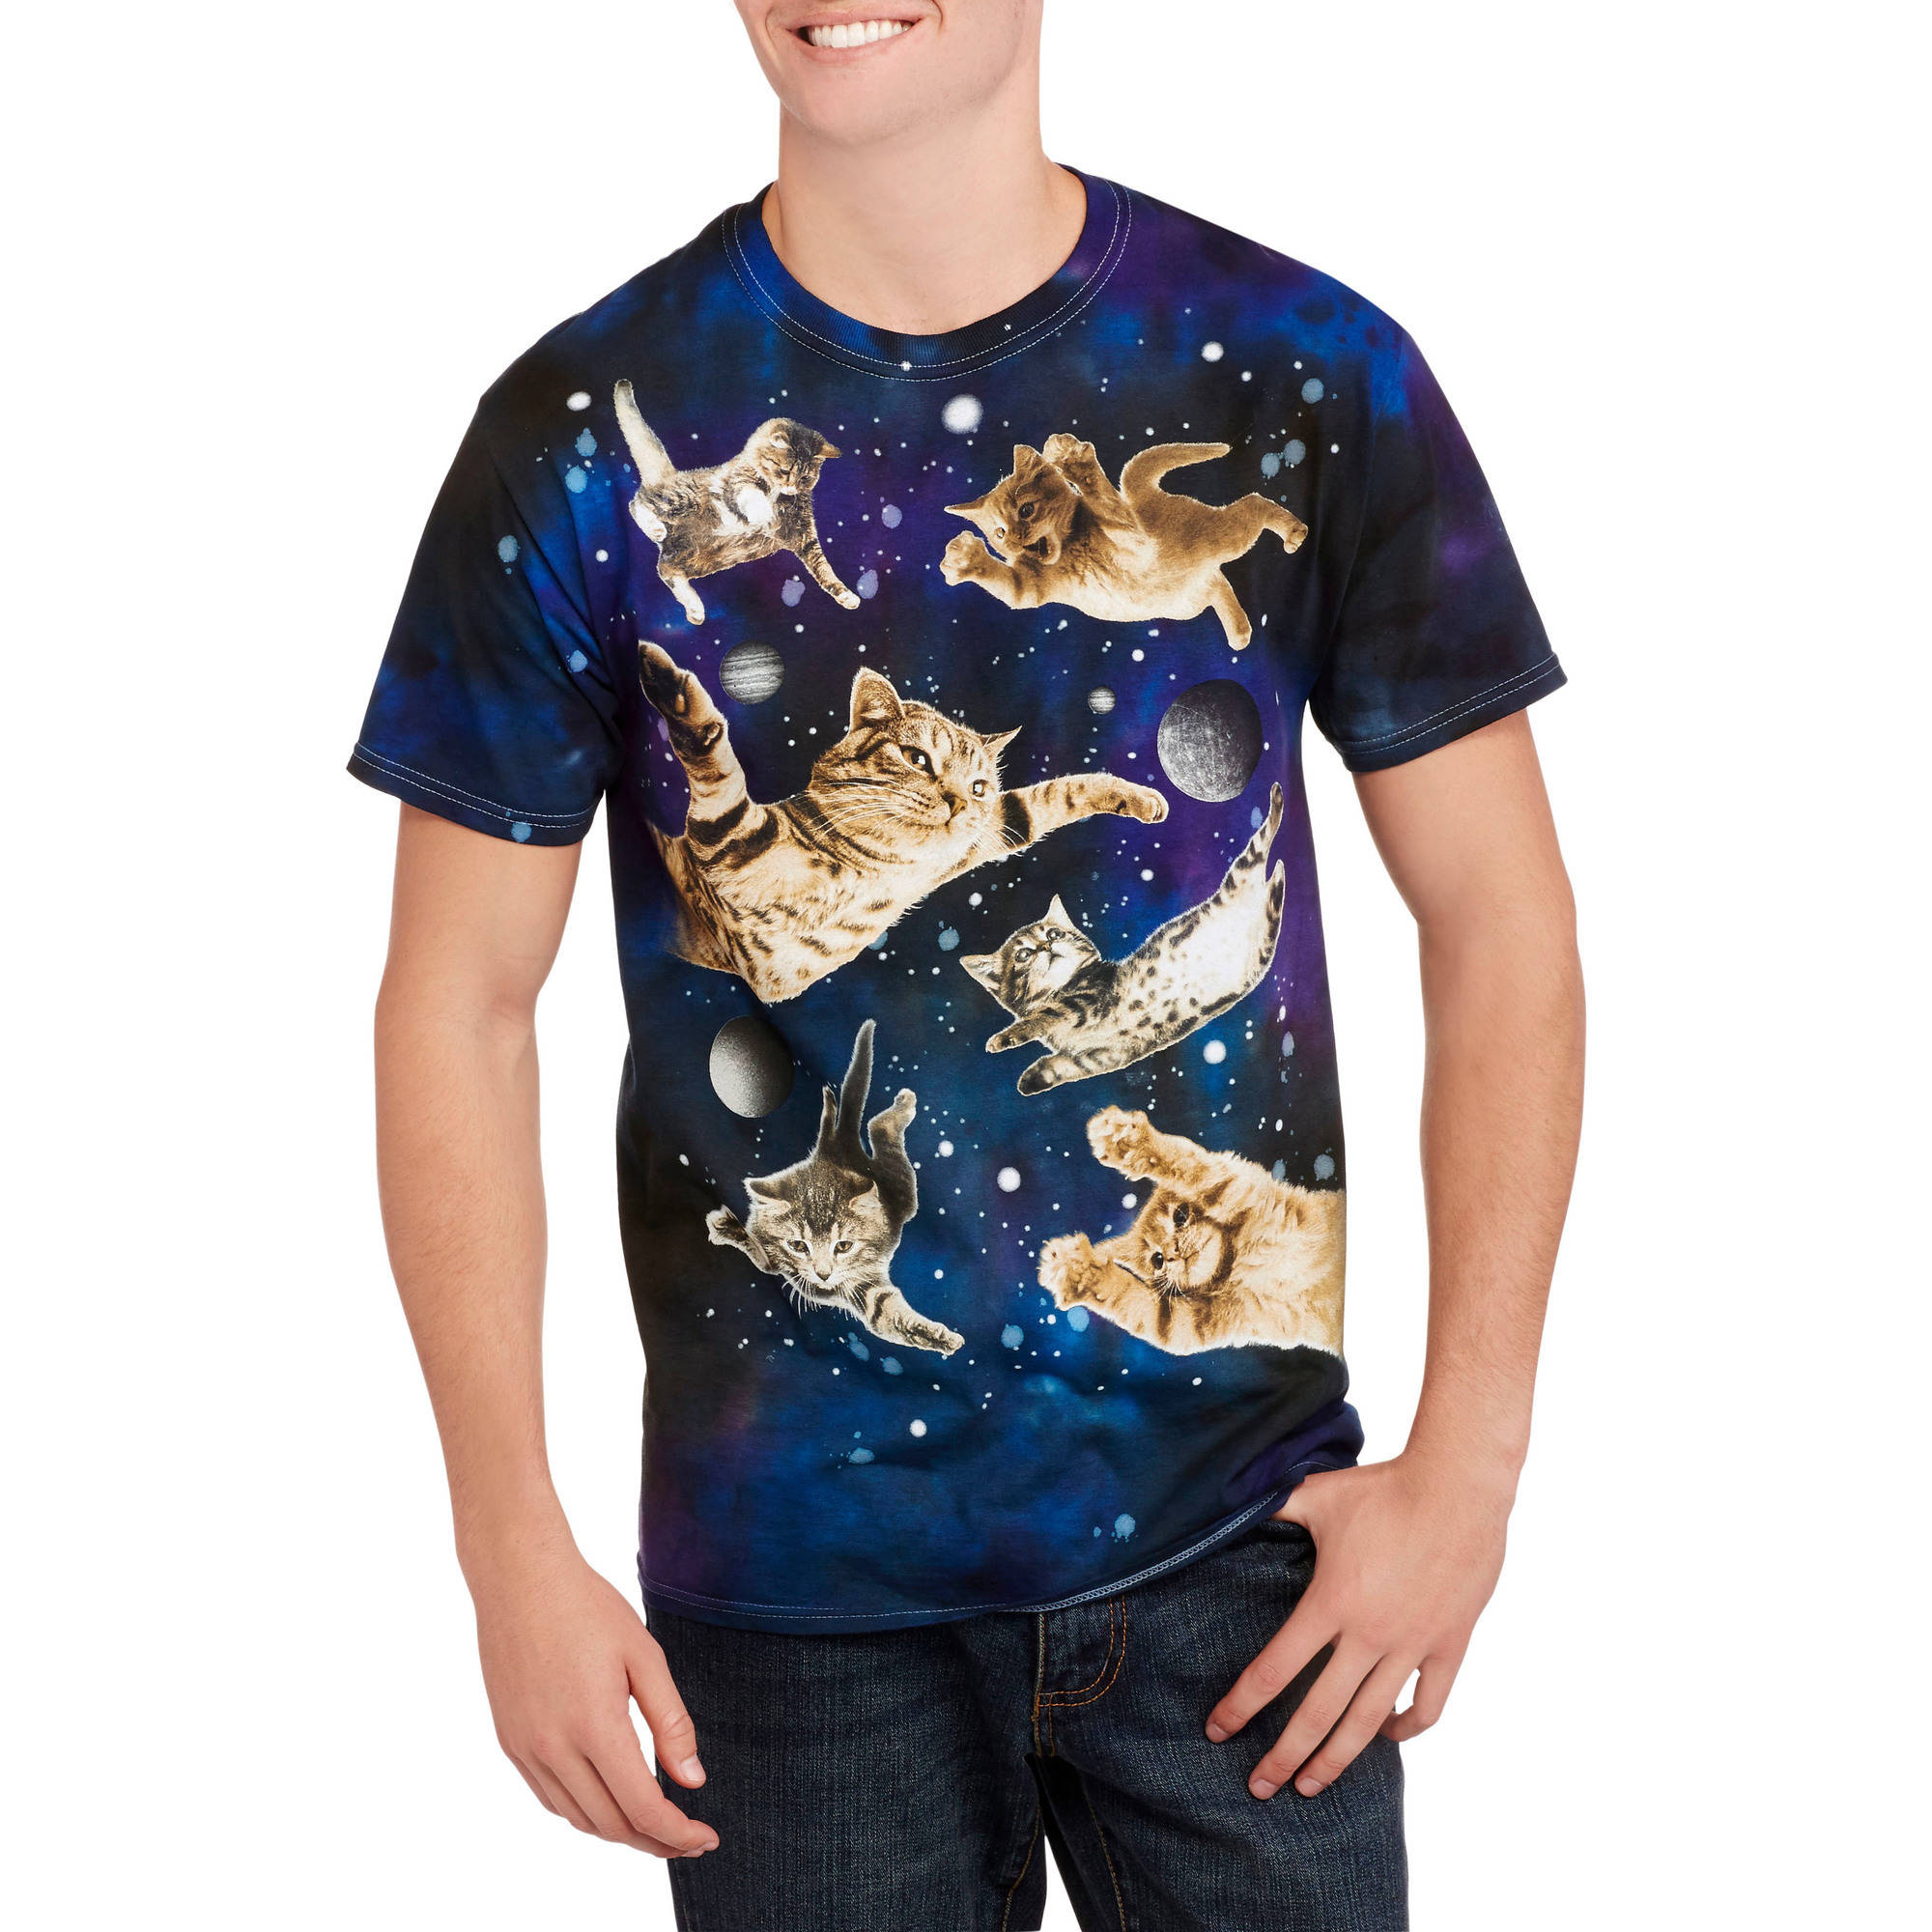 Cats in Space Men's Graphic Tee